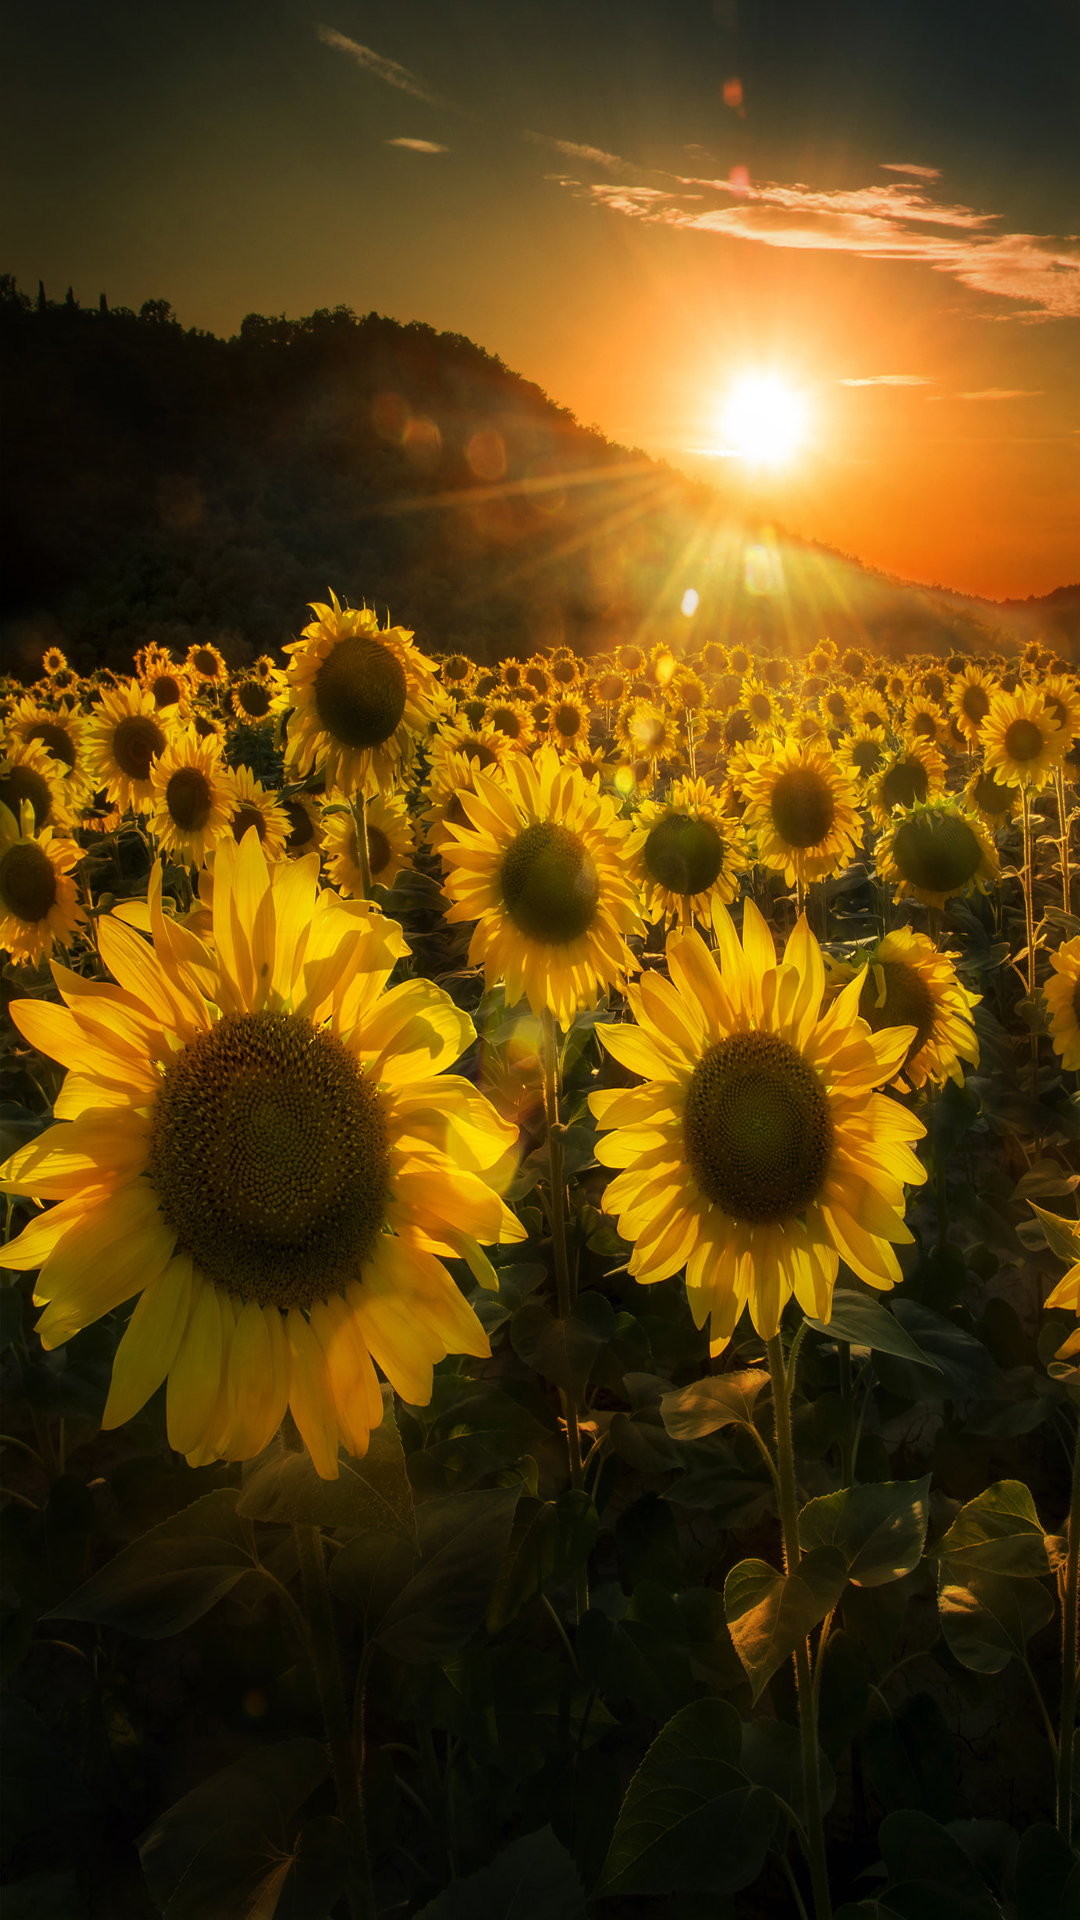 Sunflowers At Sunset The Iphone Wallpapers